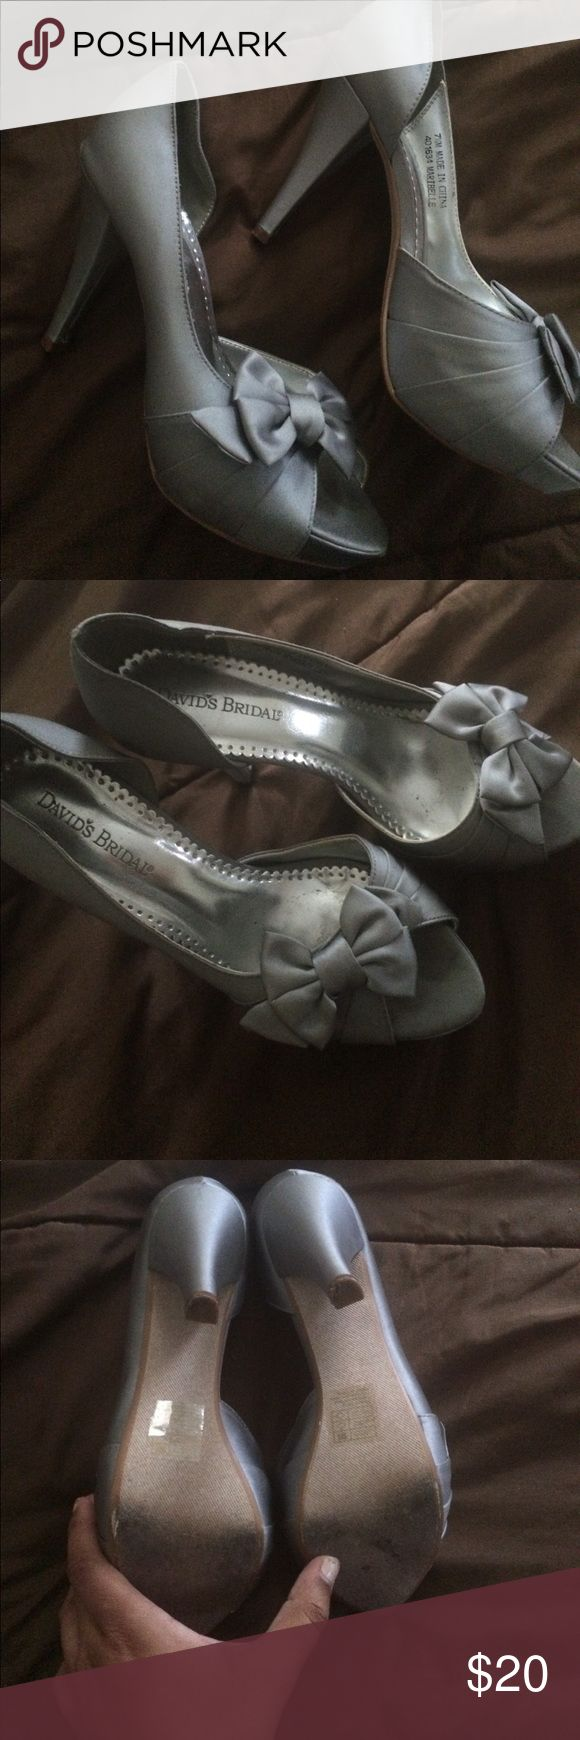 David's Bridal Bridesmaid shoes David's Bridal Bridesmad shoes. Worn once. In excellent condition. David's Bridal Shoes Heels